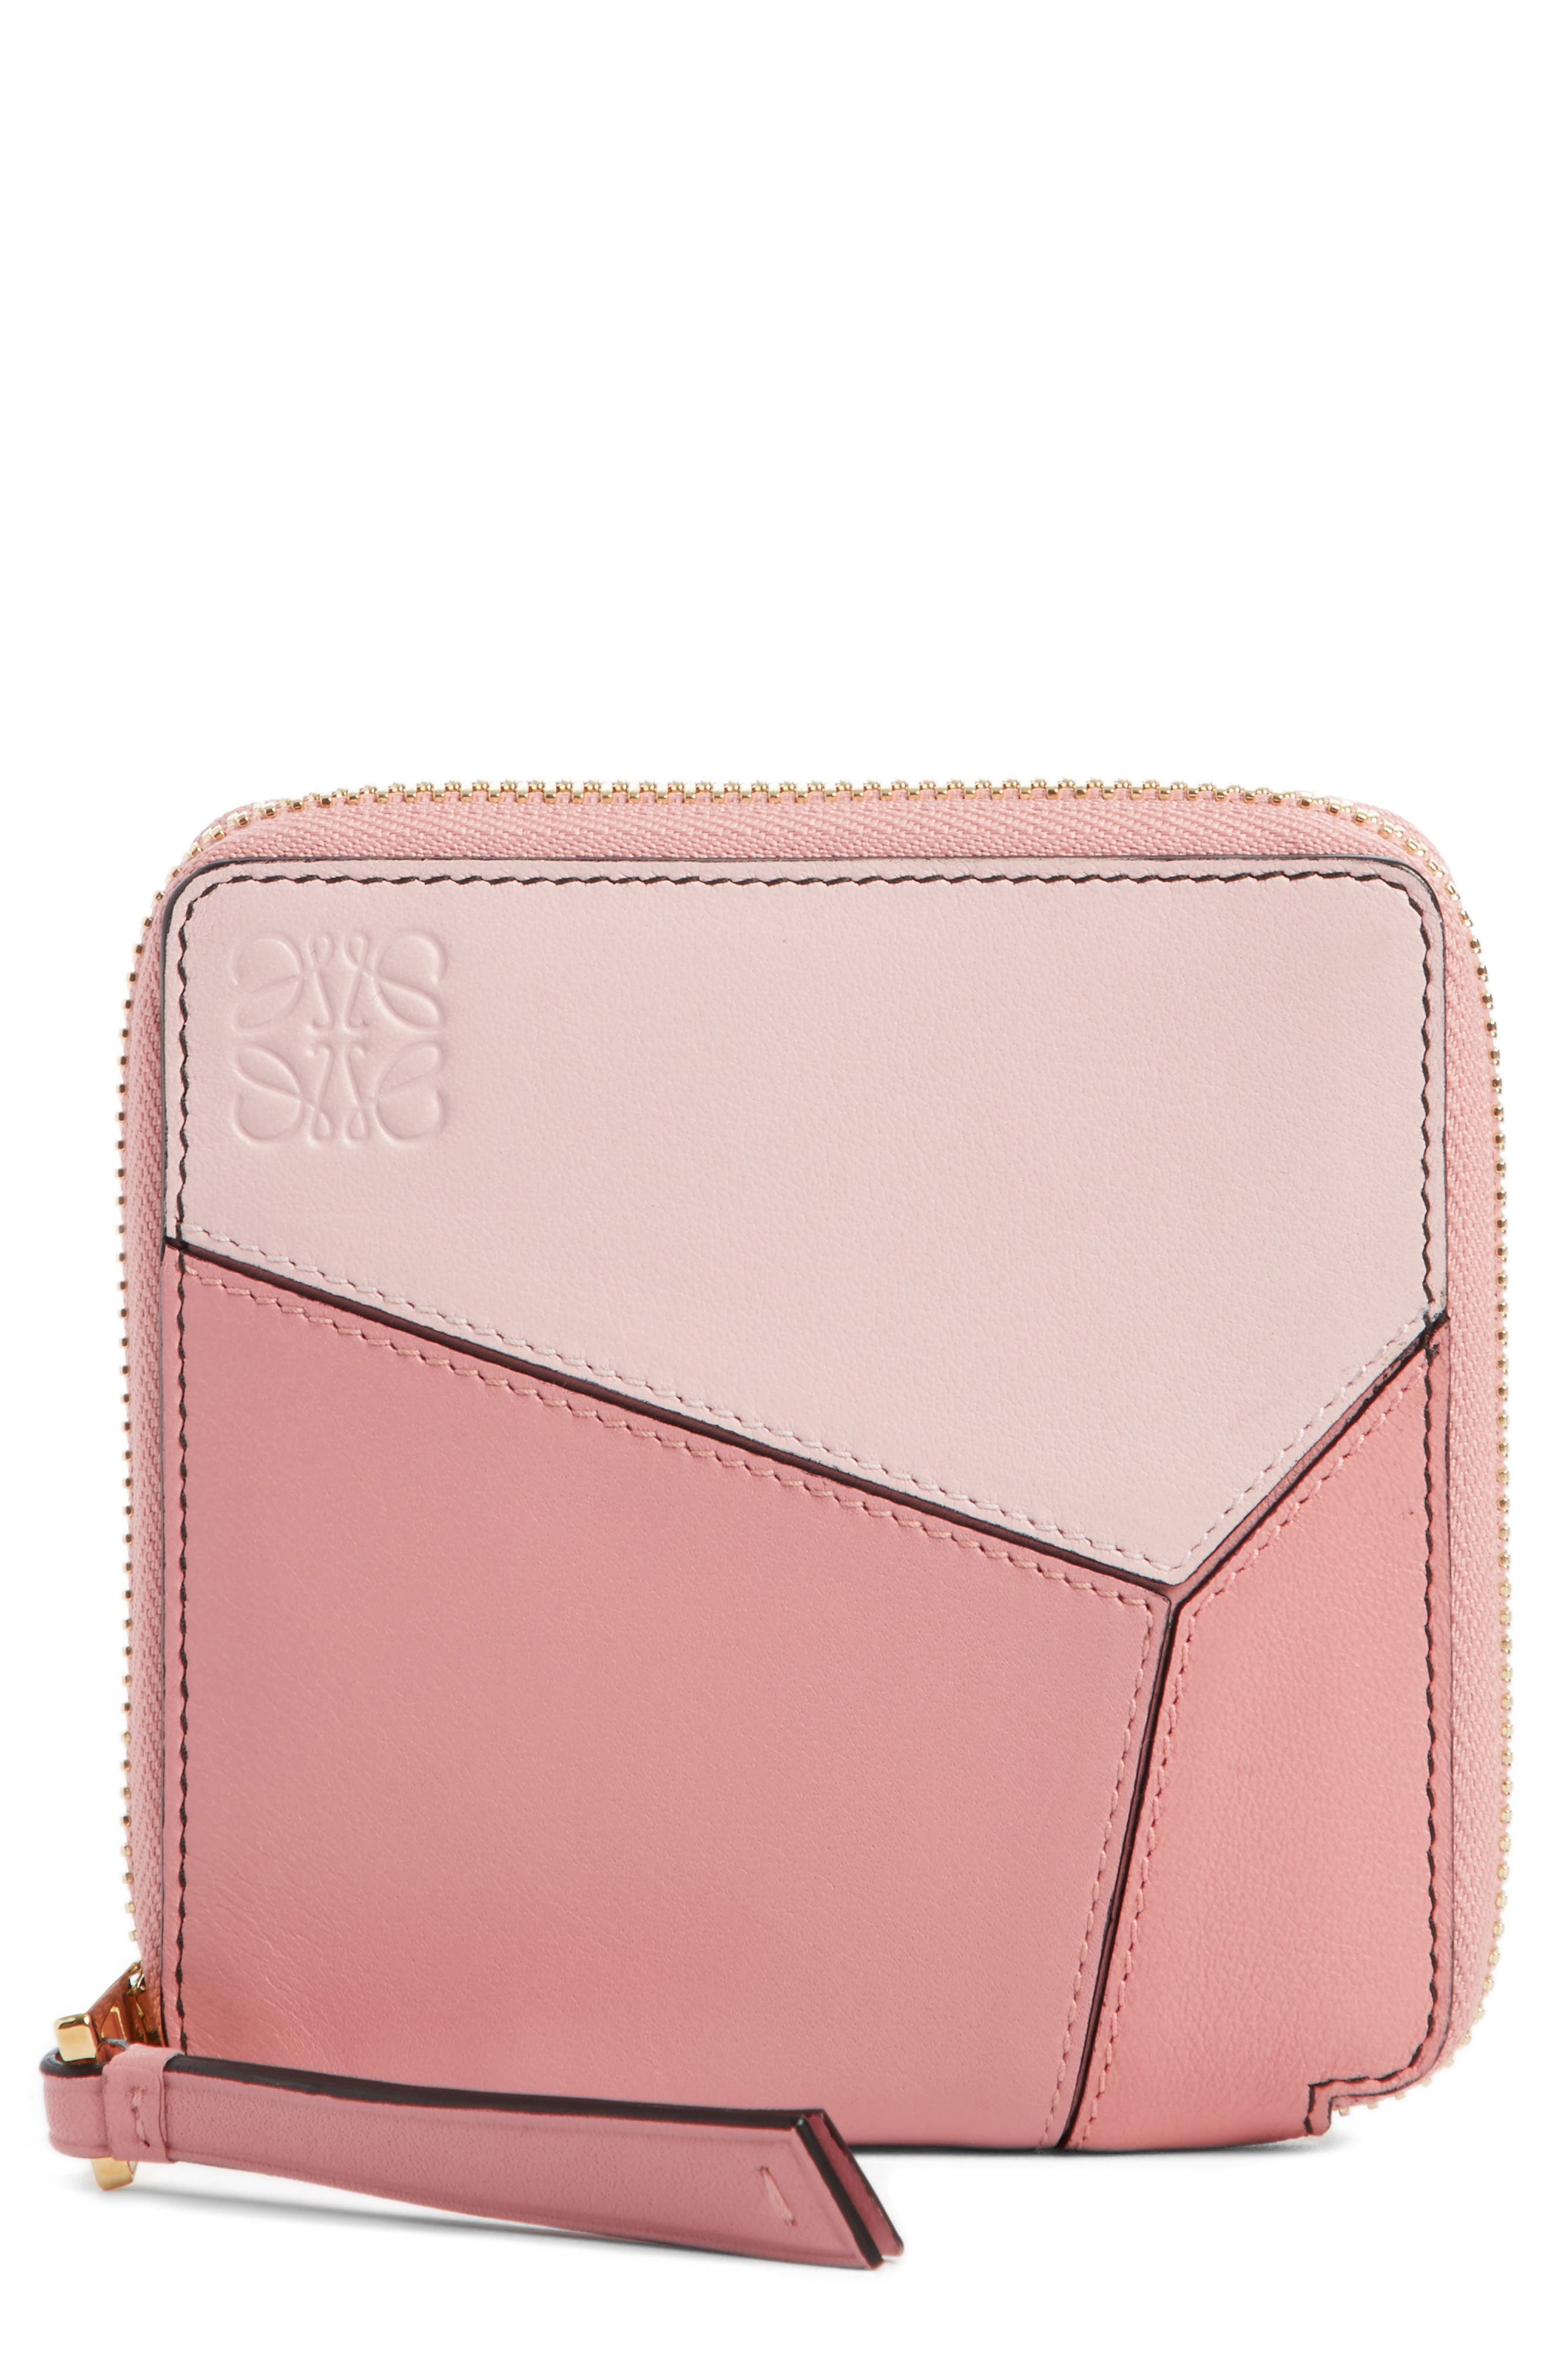 Colorblock Puzzle French Wallet,                         Main,                         color, Multi Pink